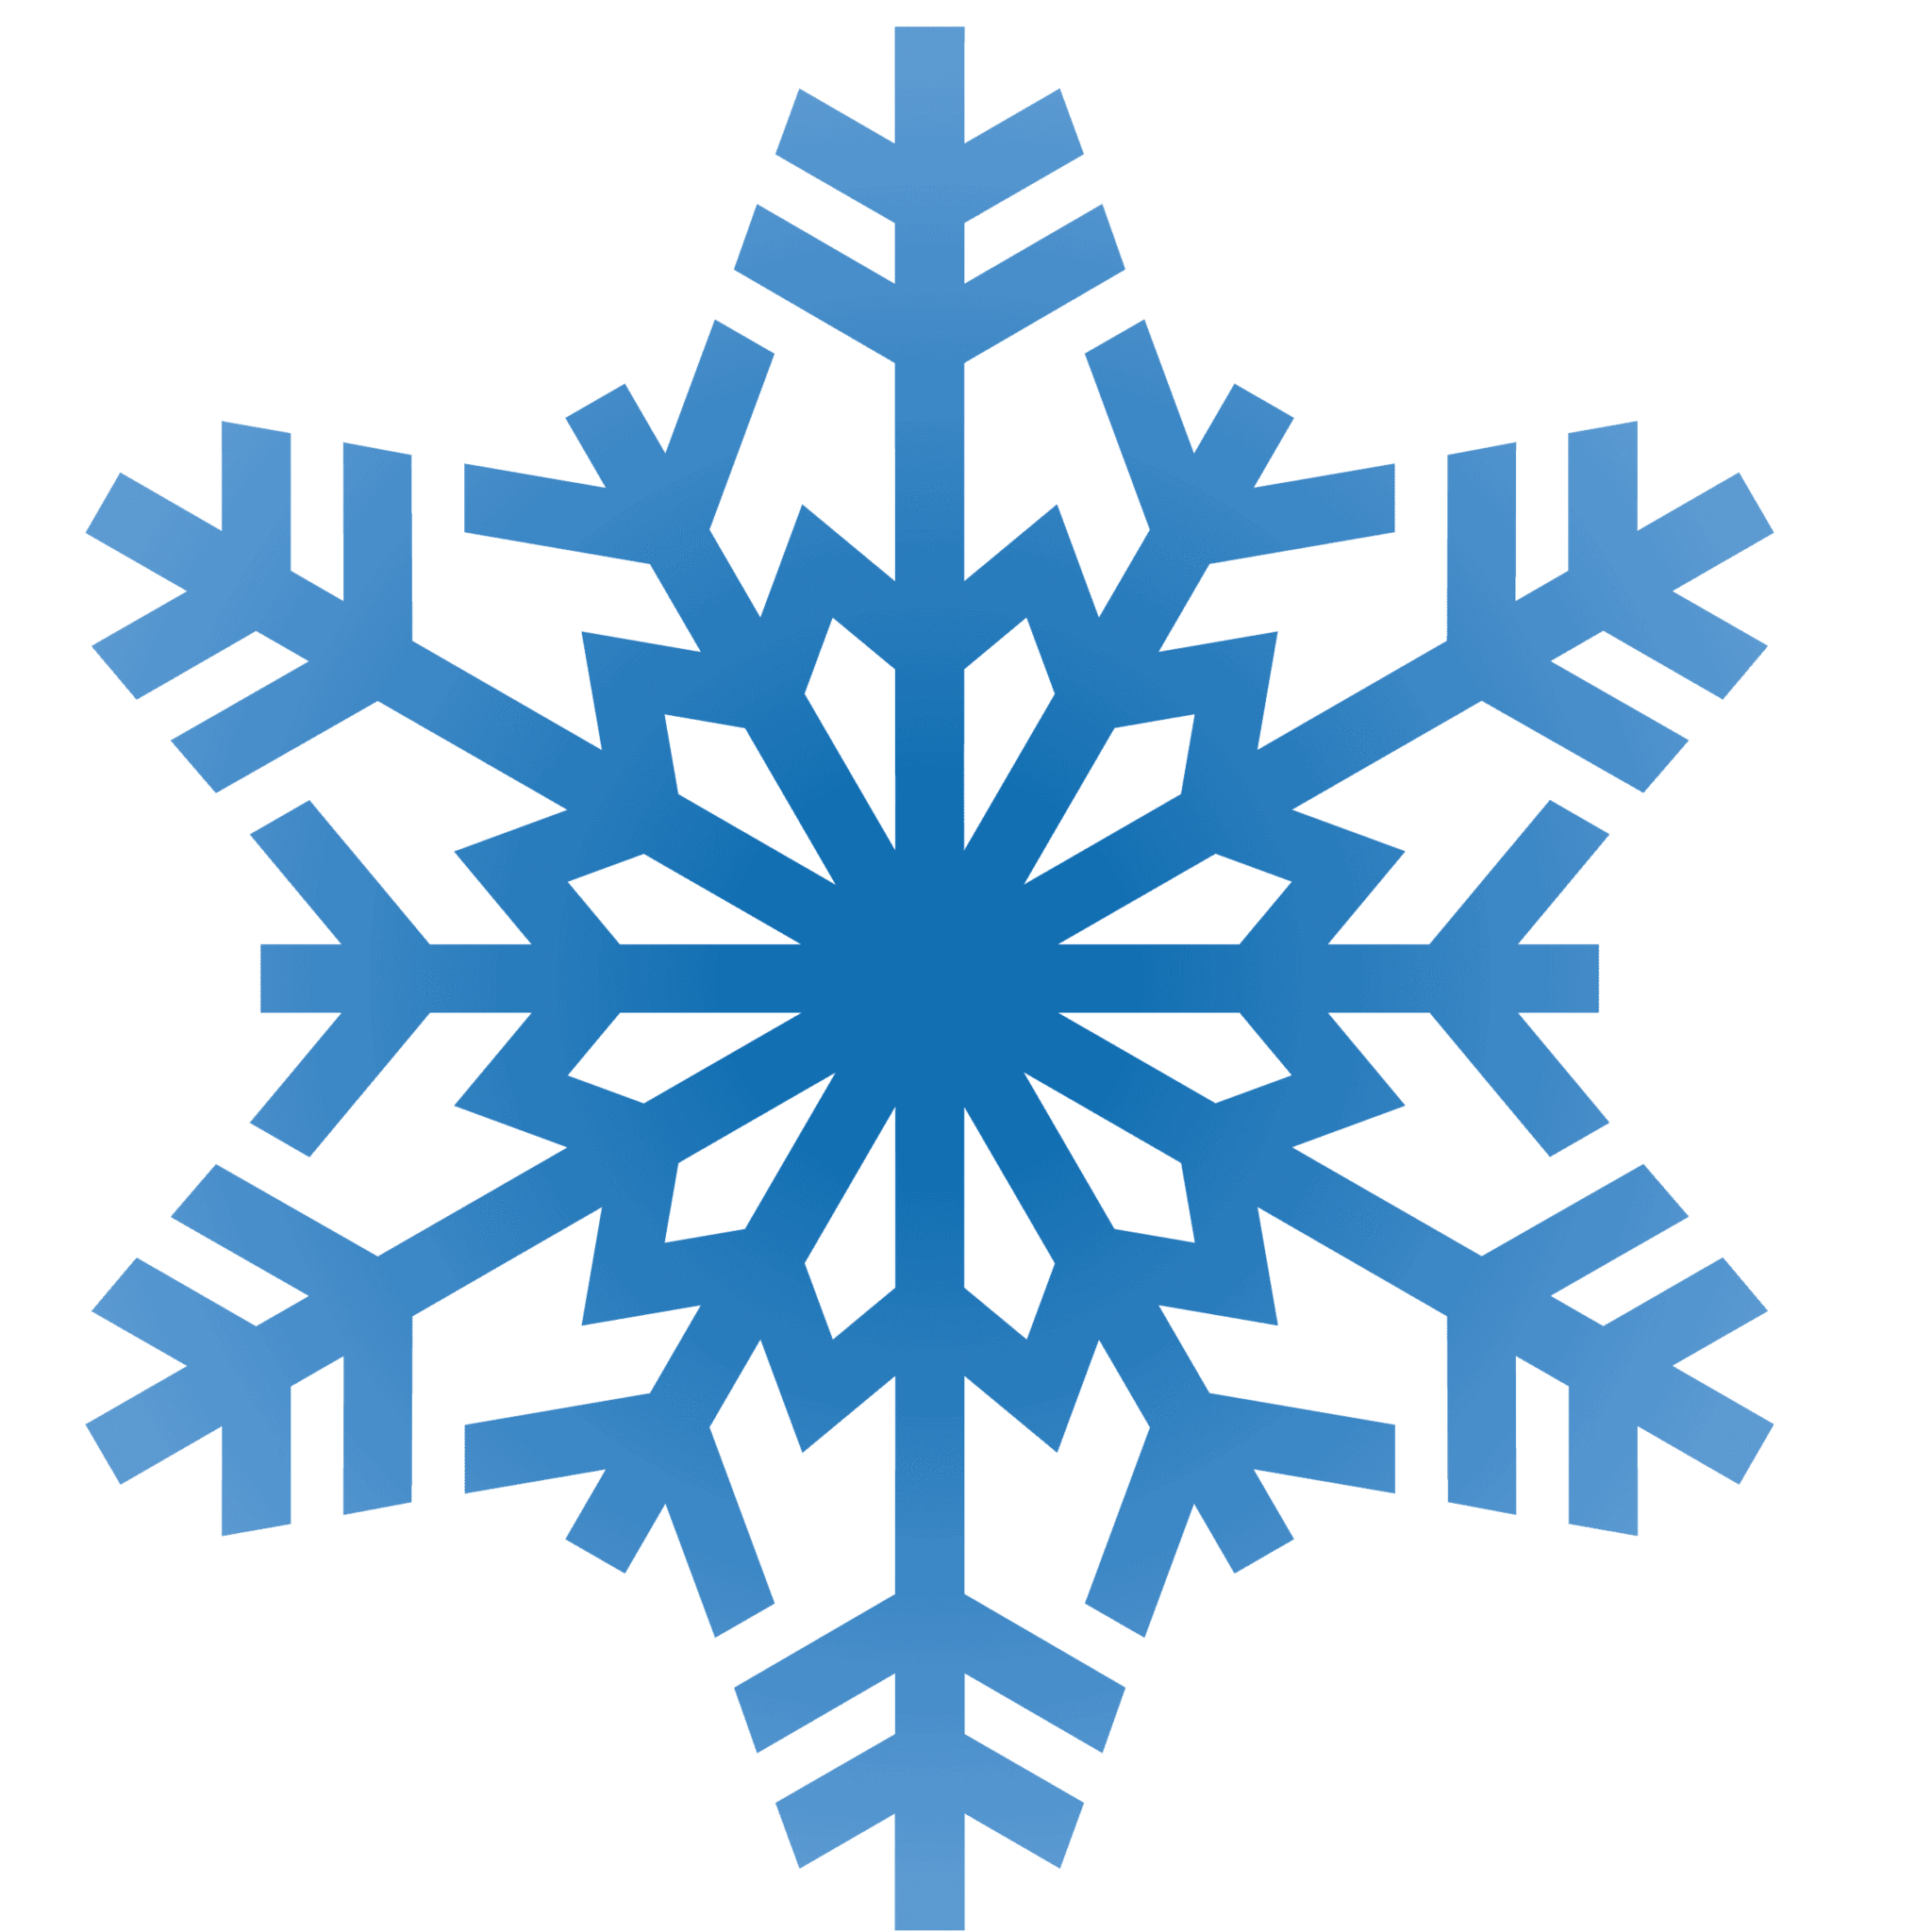 Chubby snowflake clipart clip art free library https://www.chubbymealworms.com/collections/all 2018-01-01T20:55 ... clip art free library